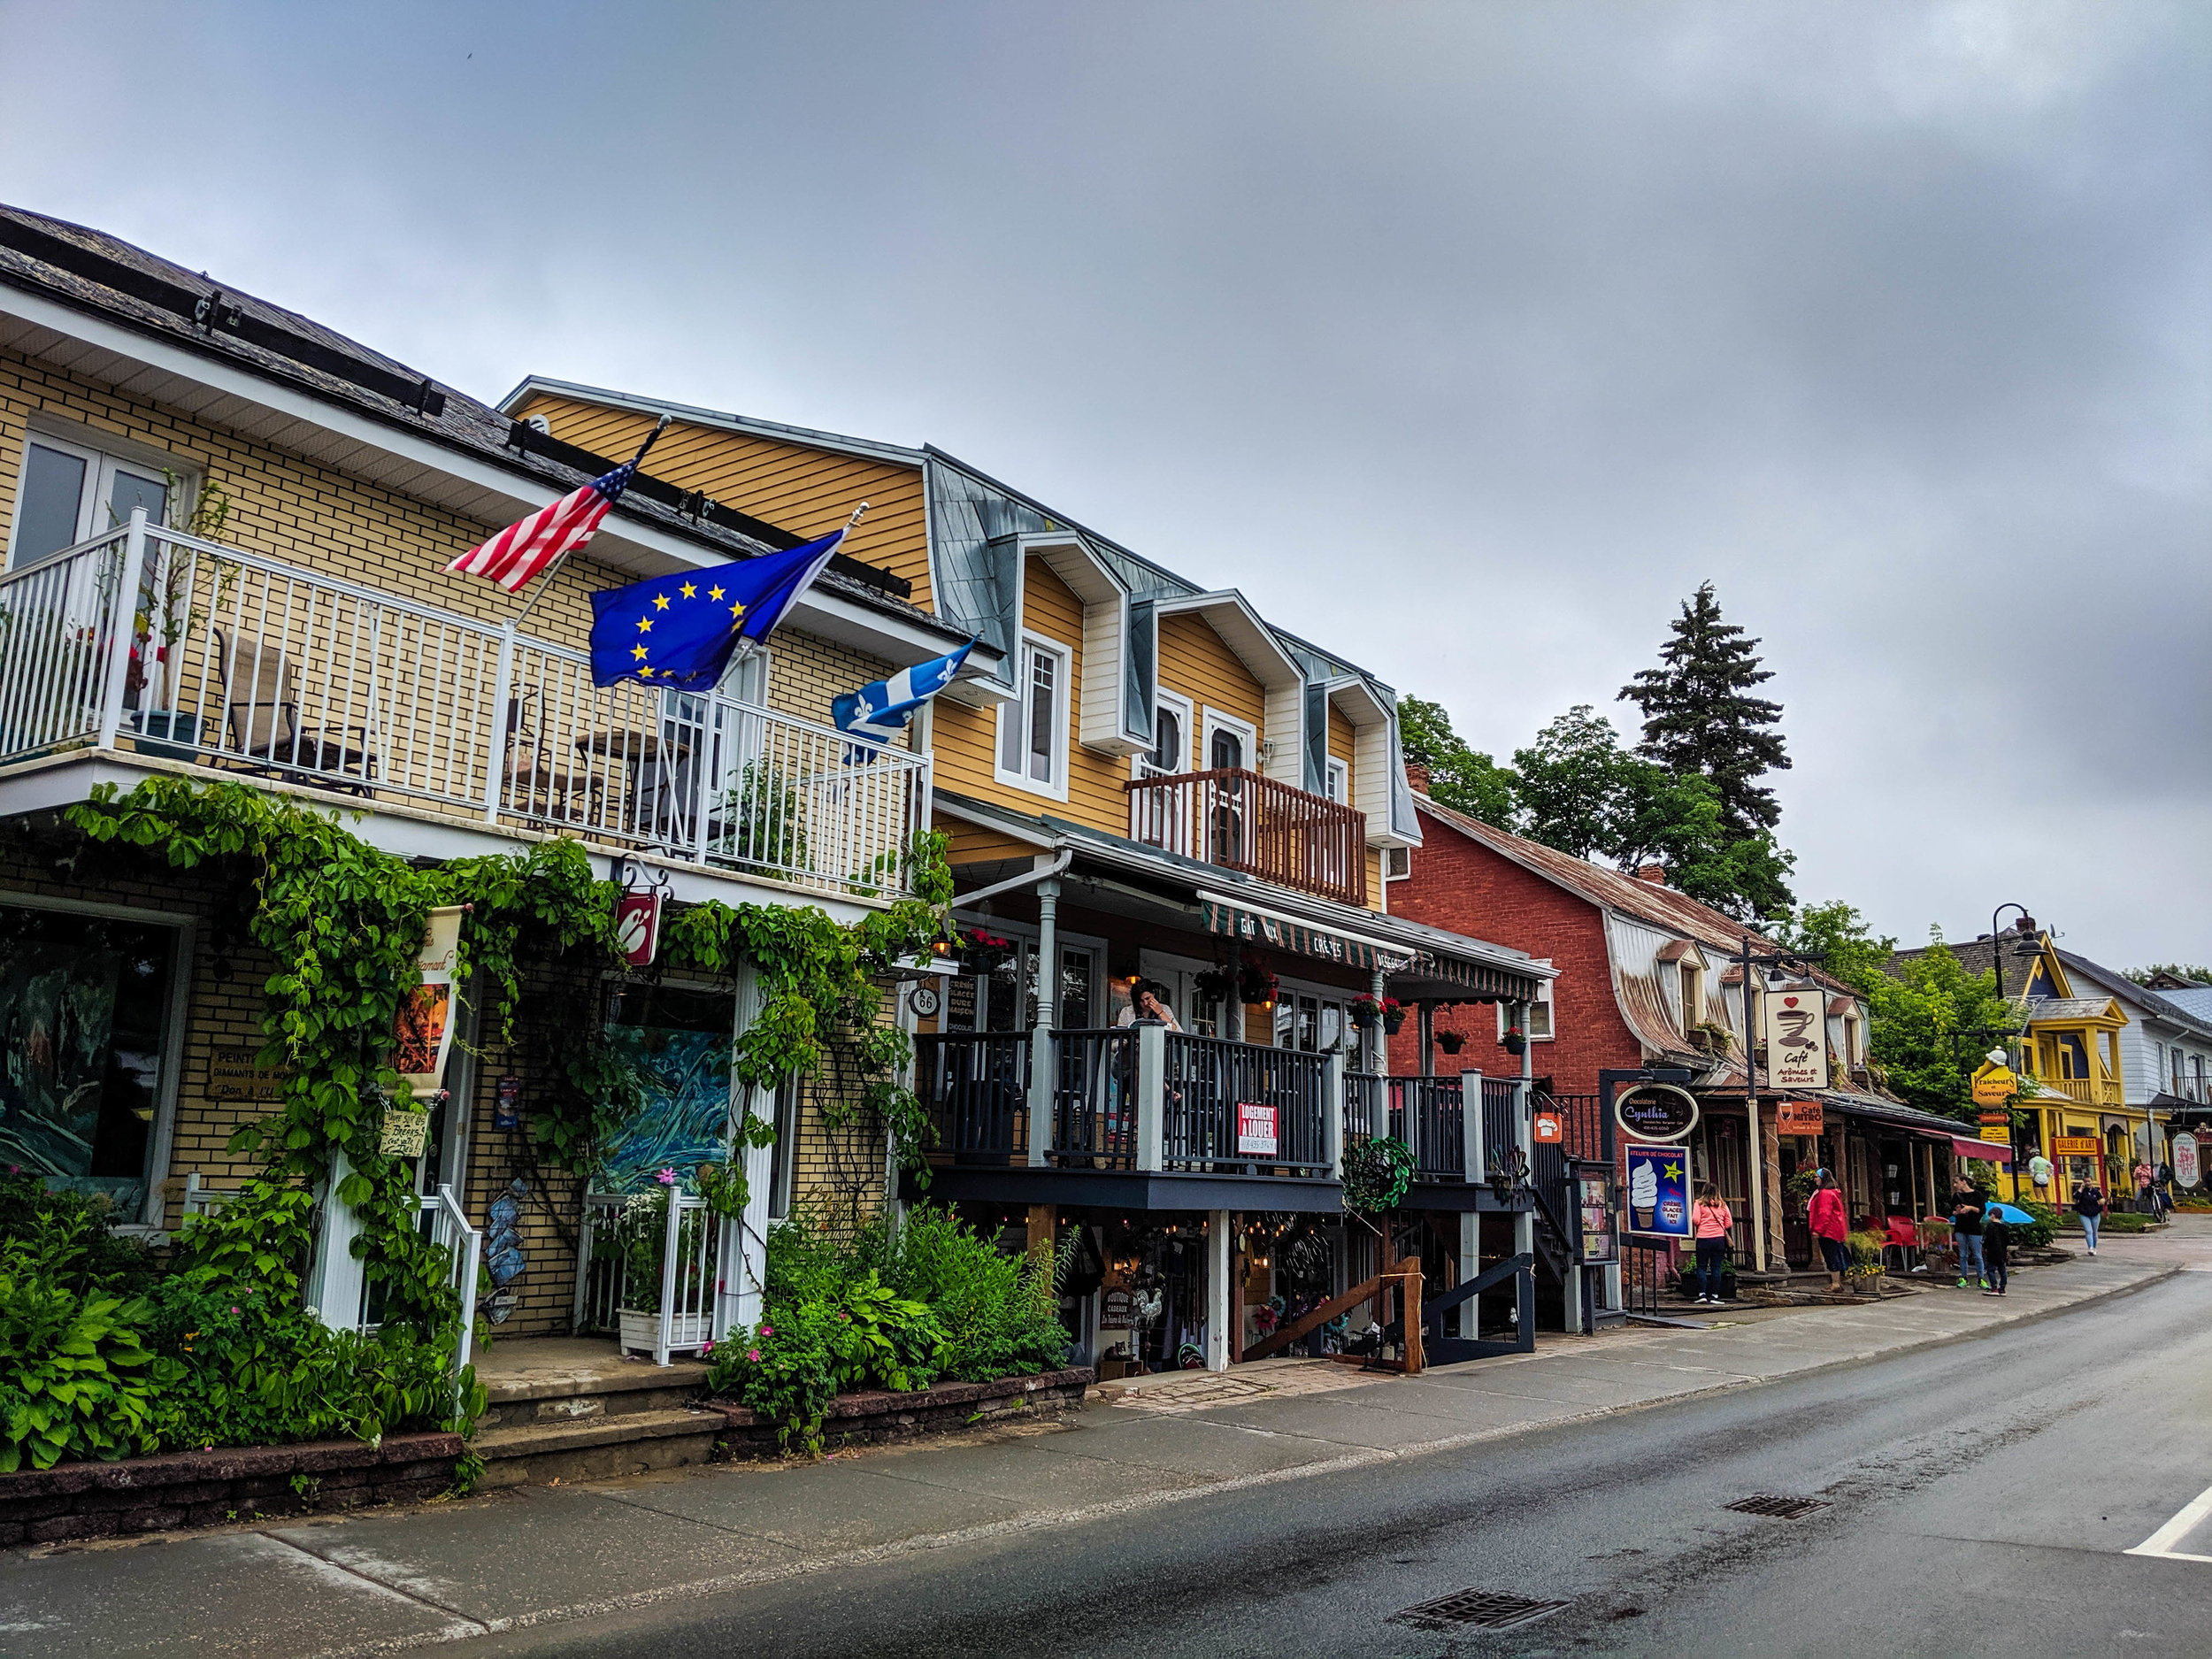 The colourful French Canadian village of Baie Saint Paul